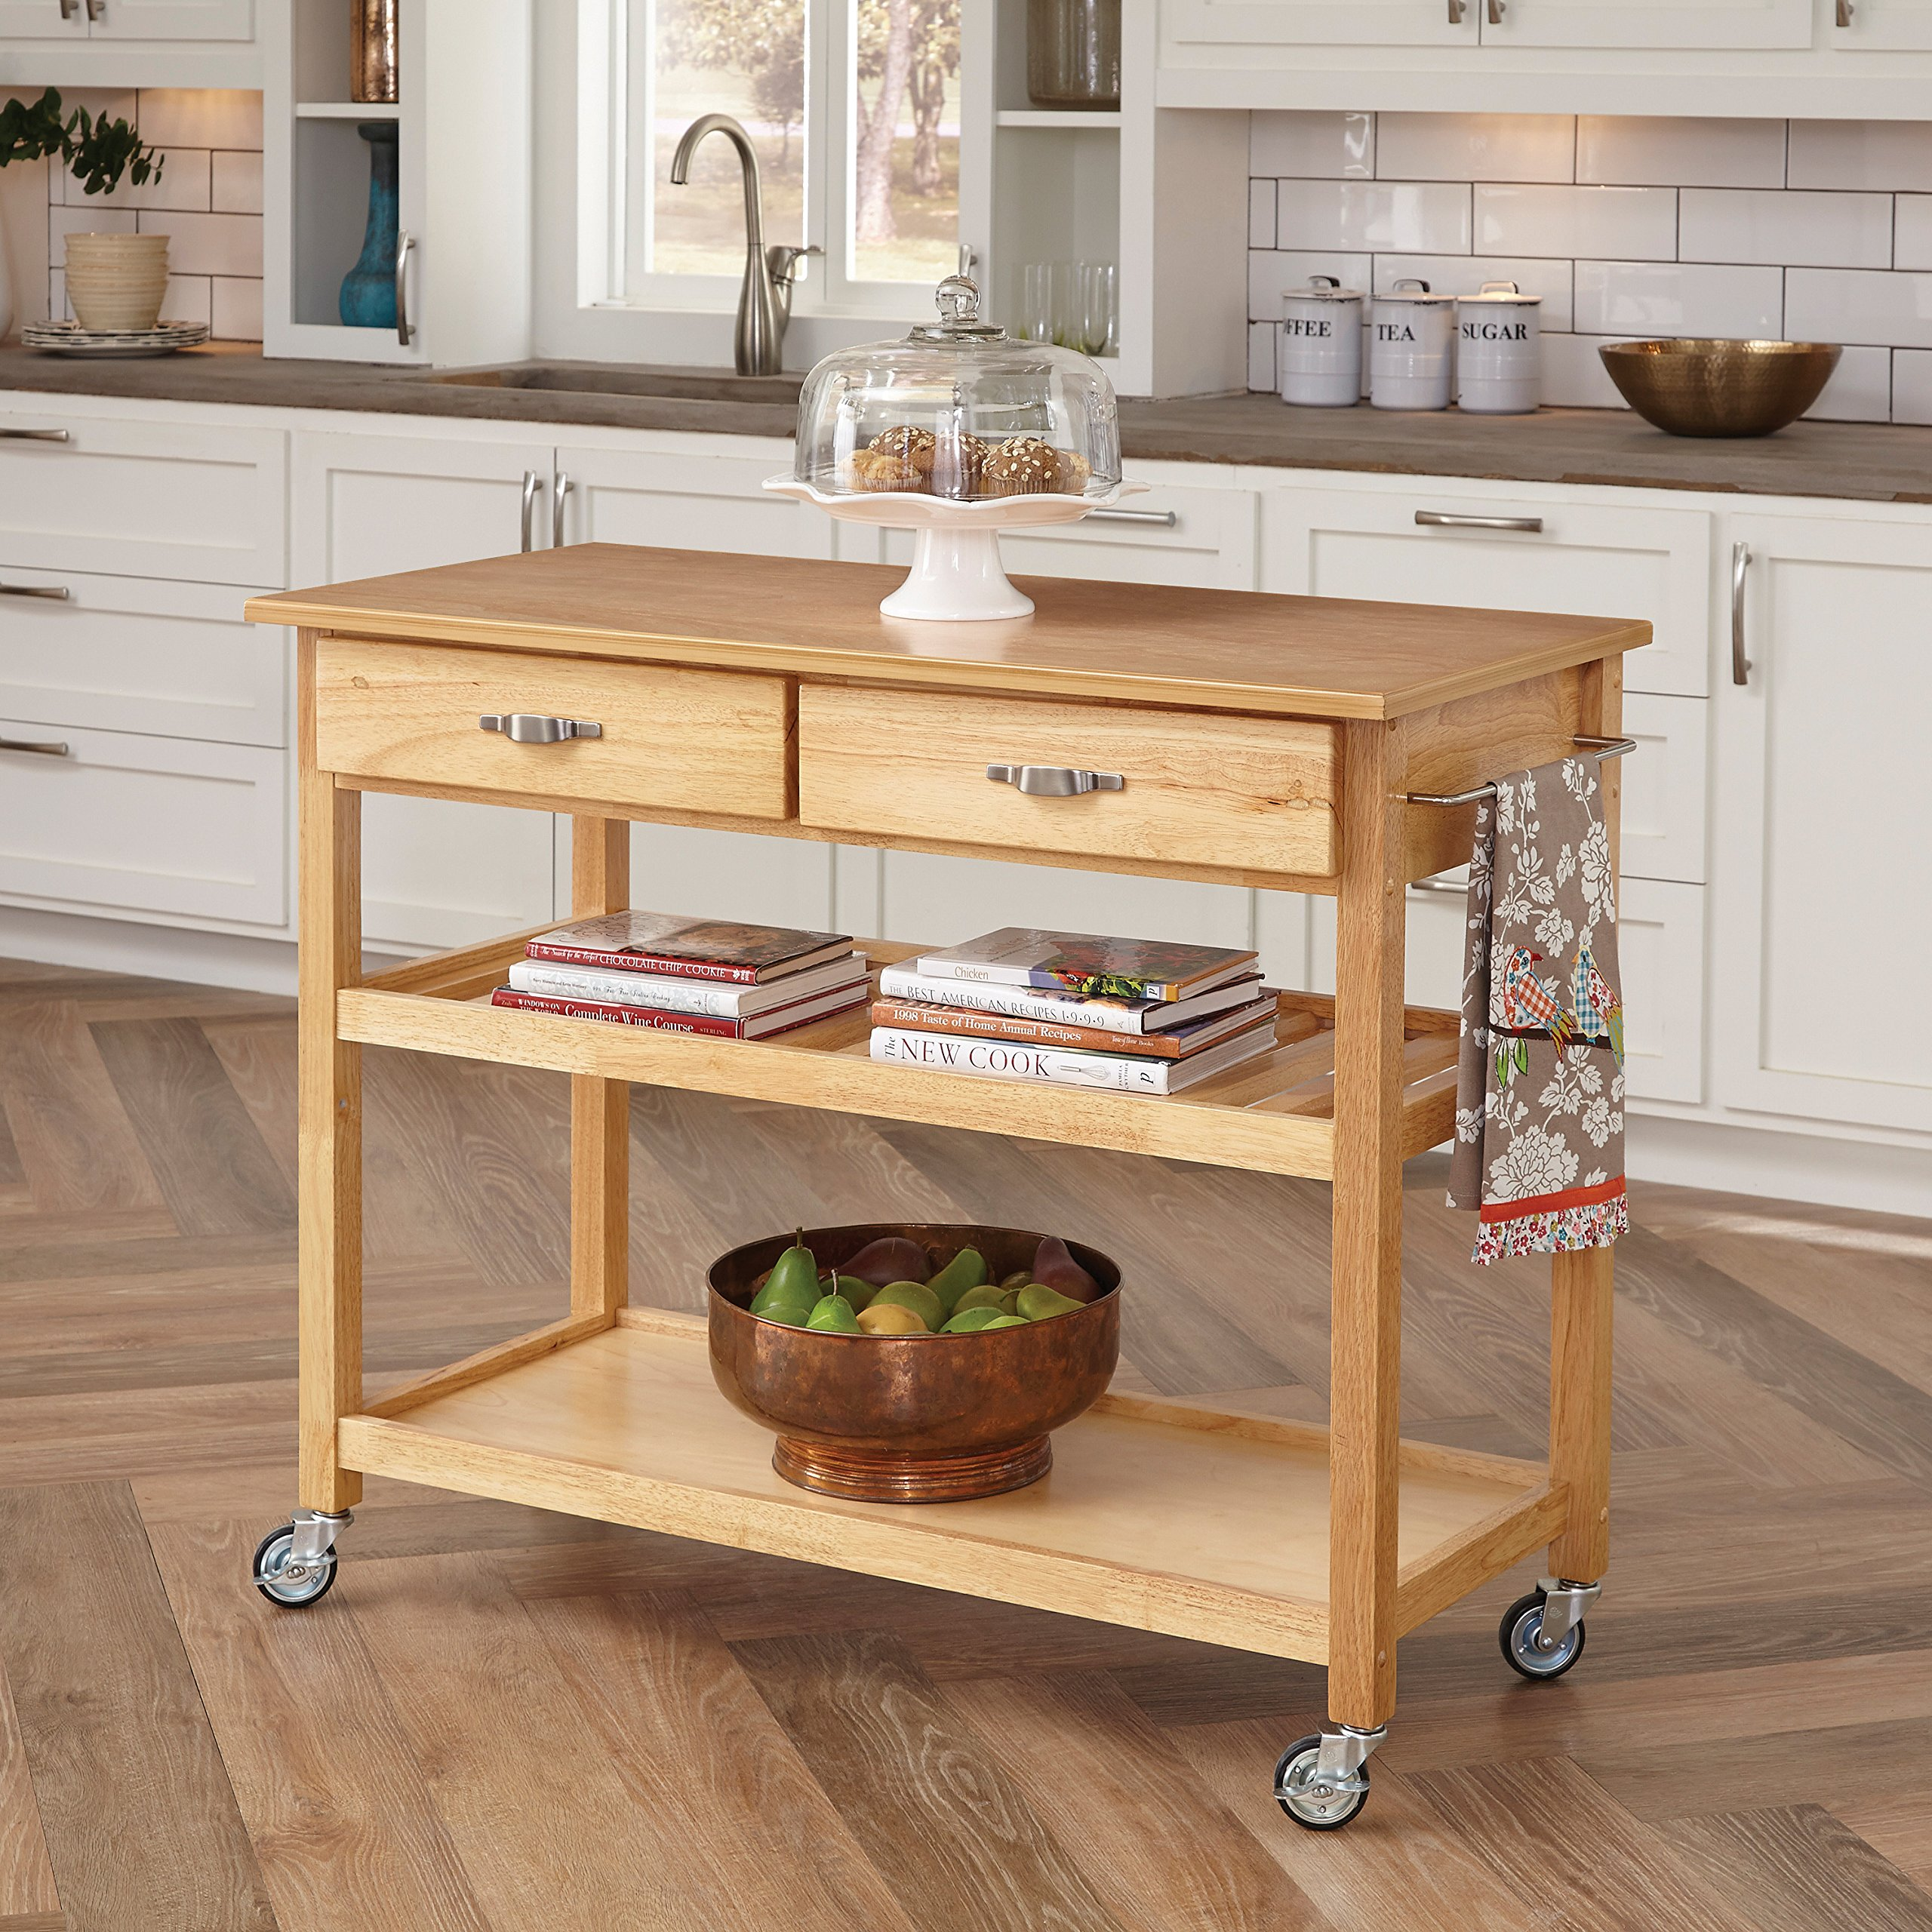 Home Styles Solid Wood Top Kitchen Cart, Natural Finish by Home Styles (Image #1)